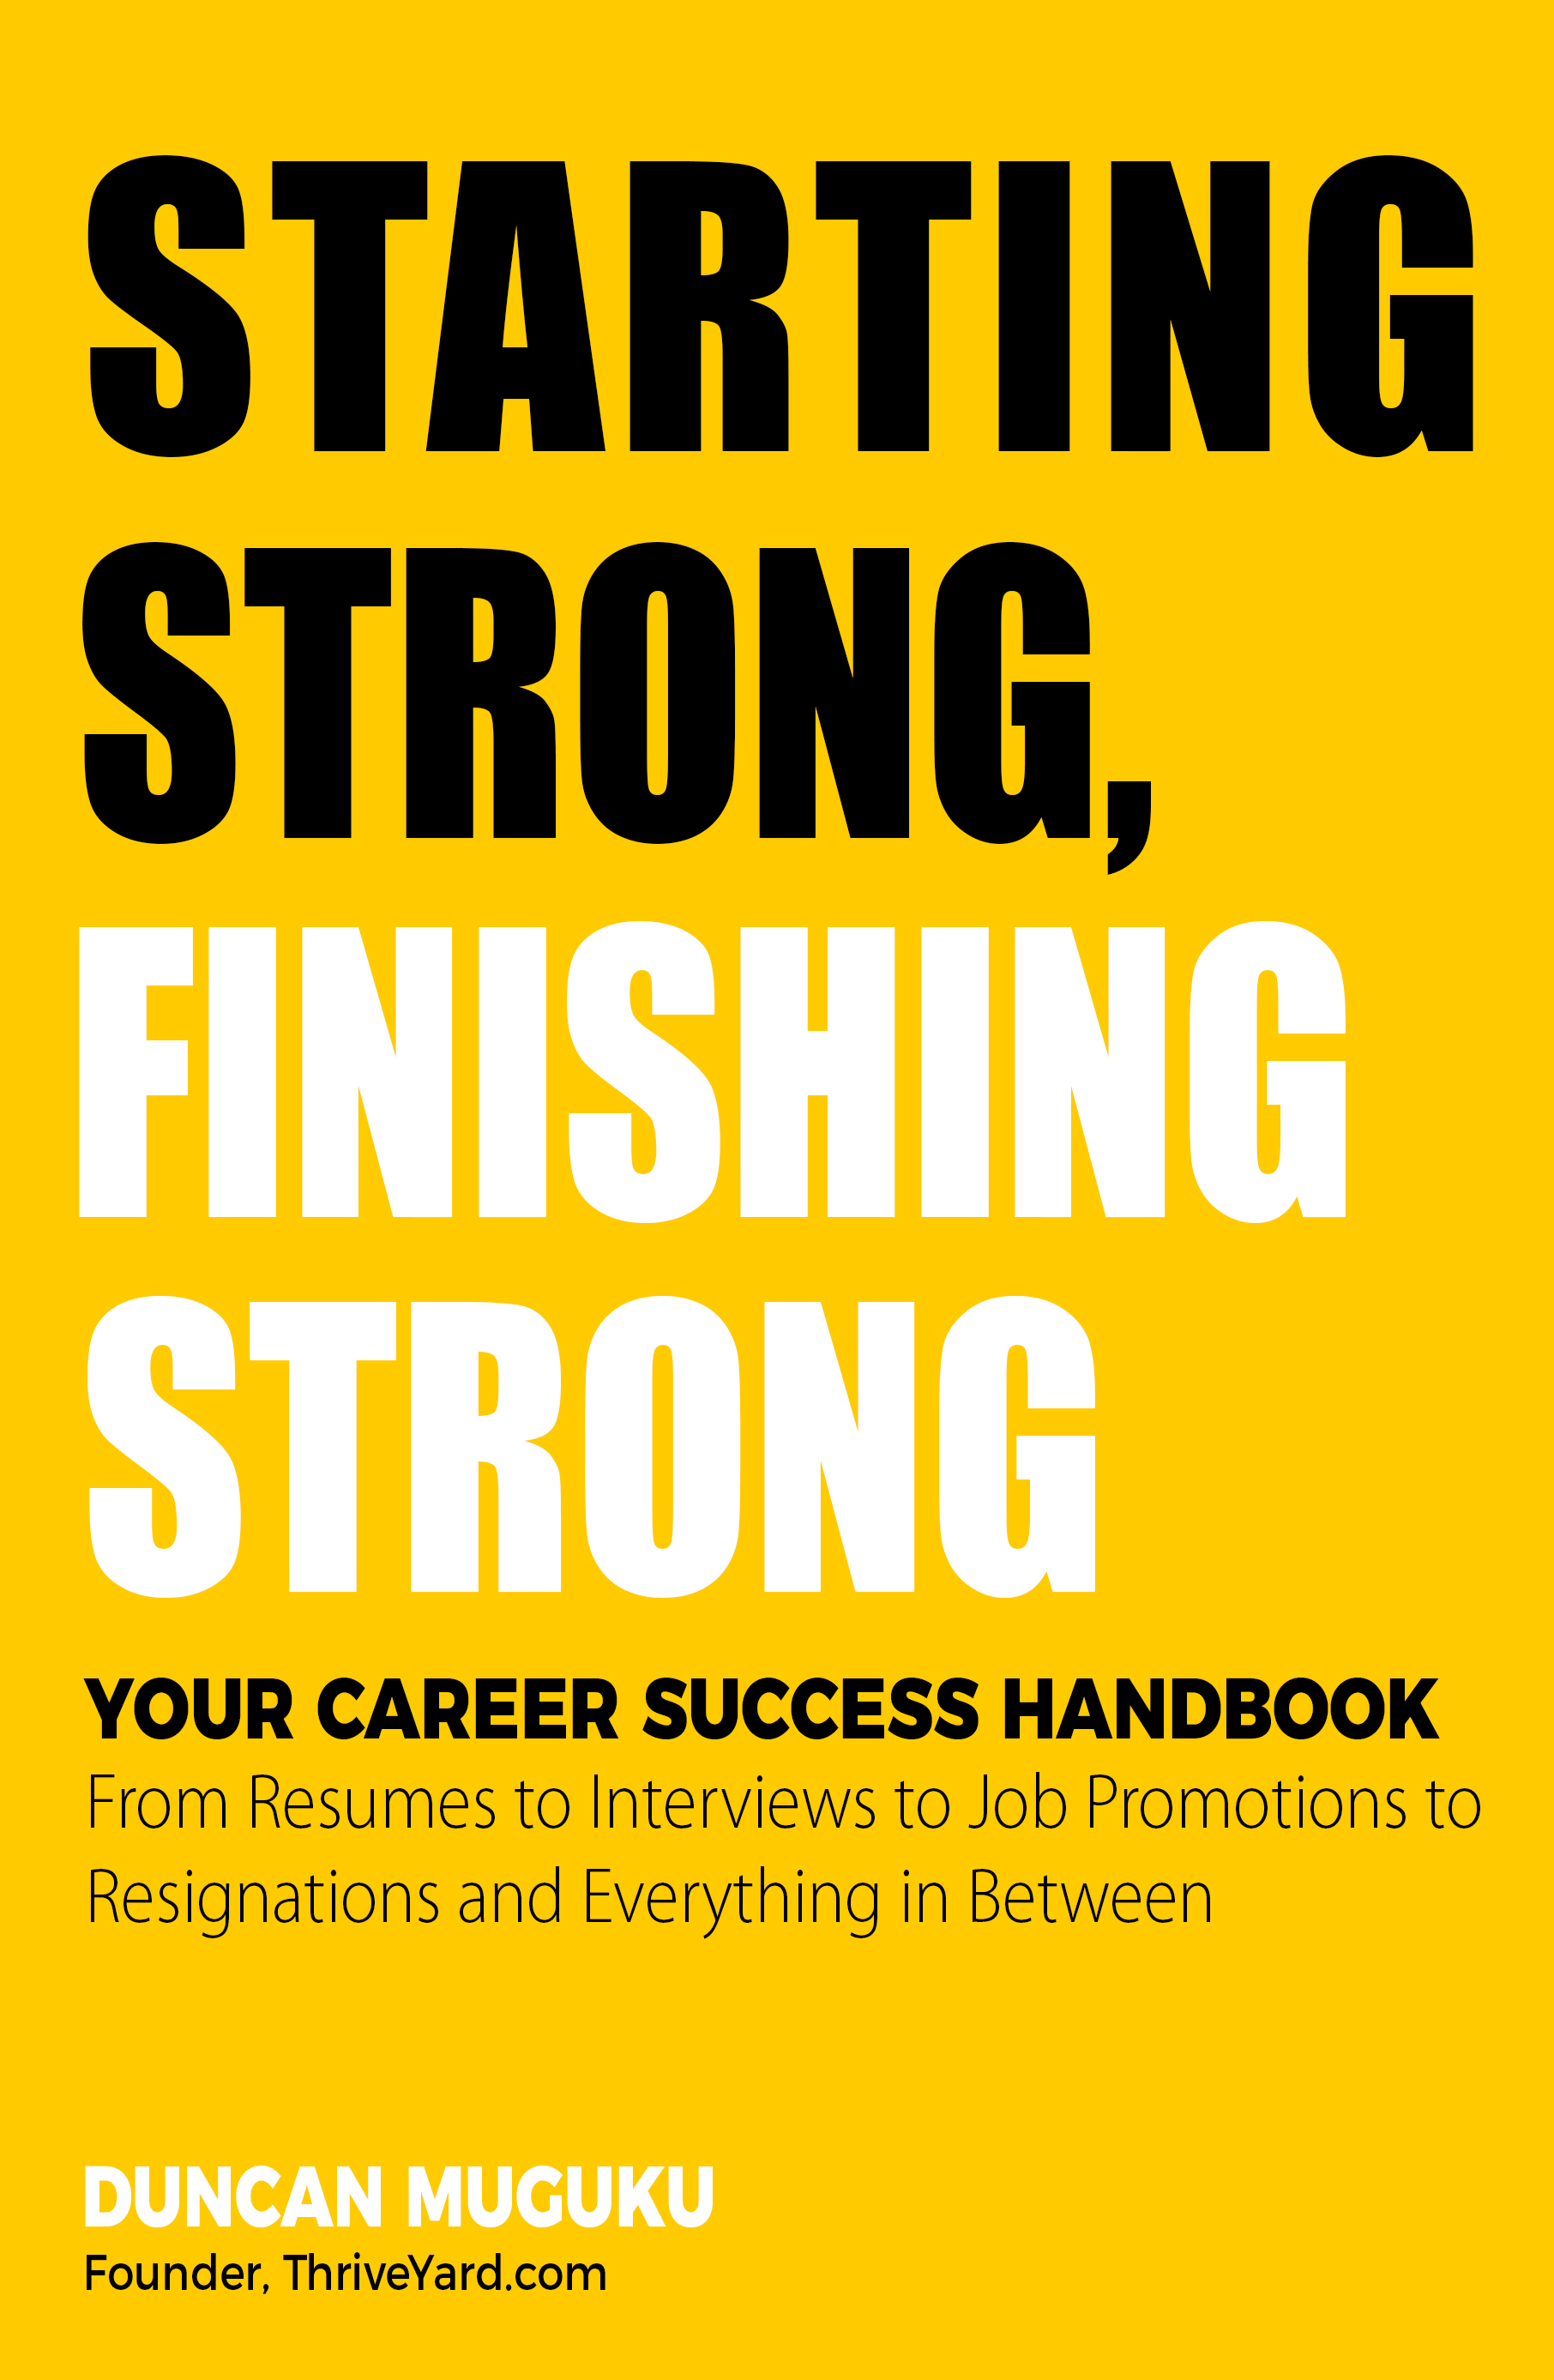 Starting Strong Finishing Strong-Your Career Success Handbook From Resumes to Interviews to Job Promotions to Resignations and Everything in Between - By Duncan Muguku, Founder, ThriveYard